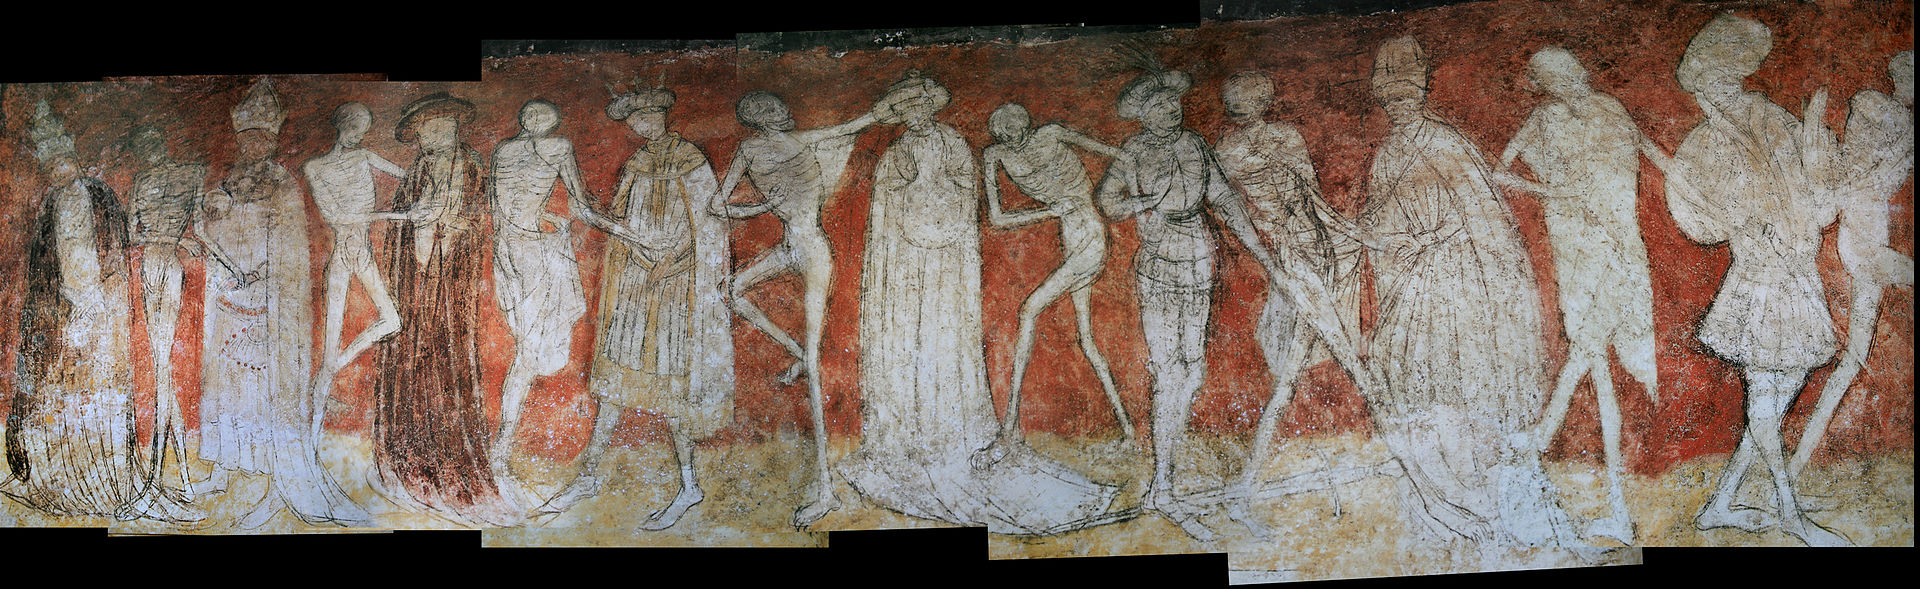 Danse macabre on art and aesthetics - Abbaye de la chaise dieu ...